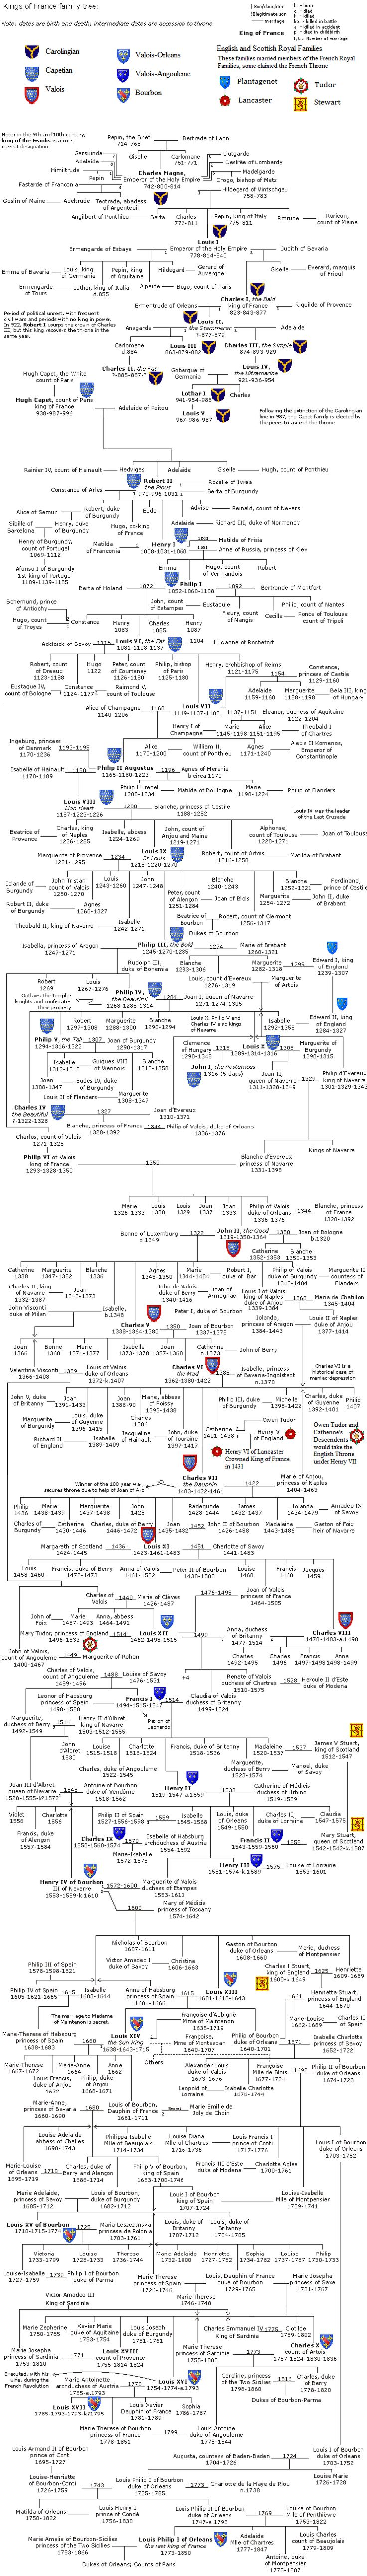 15 must see english royal family tree pins royal family trees kings of and their relation english monarchs